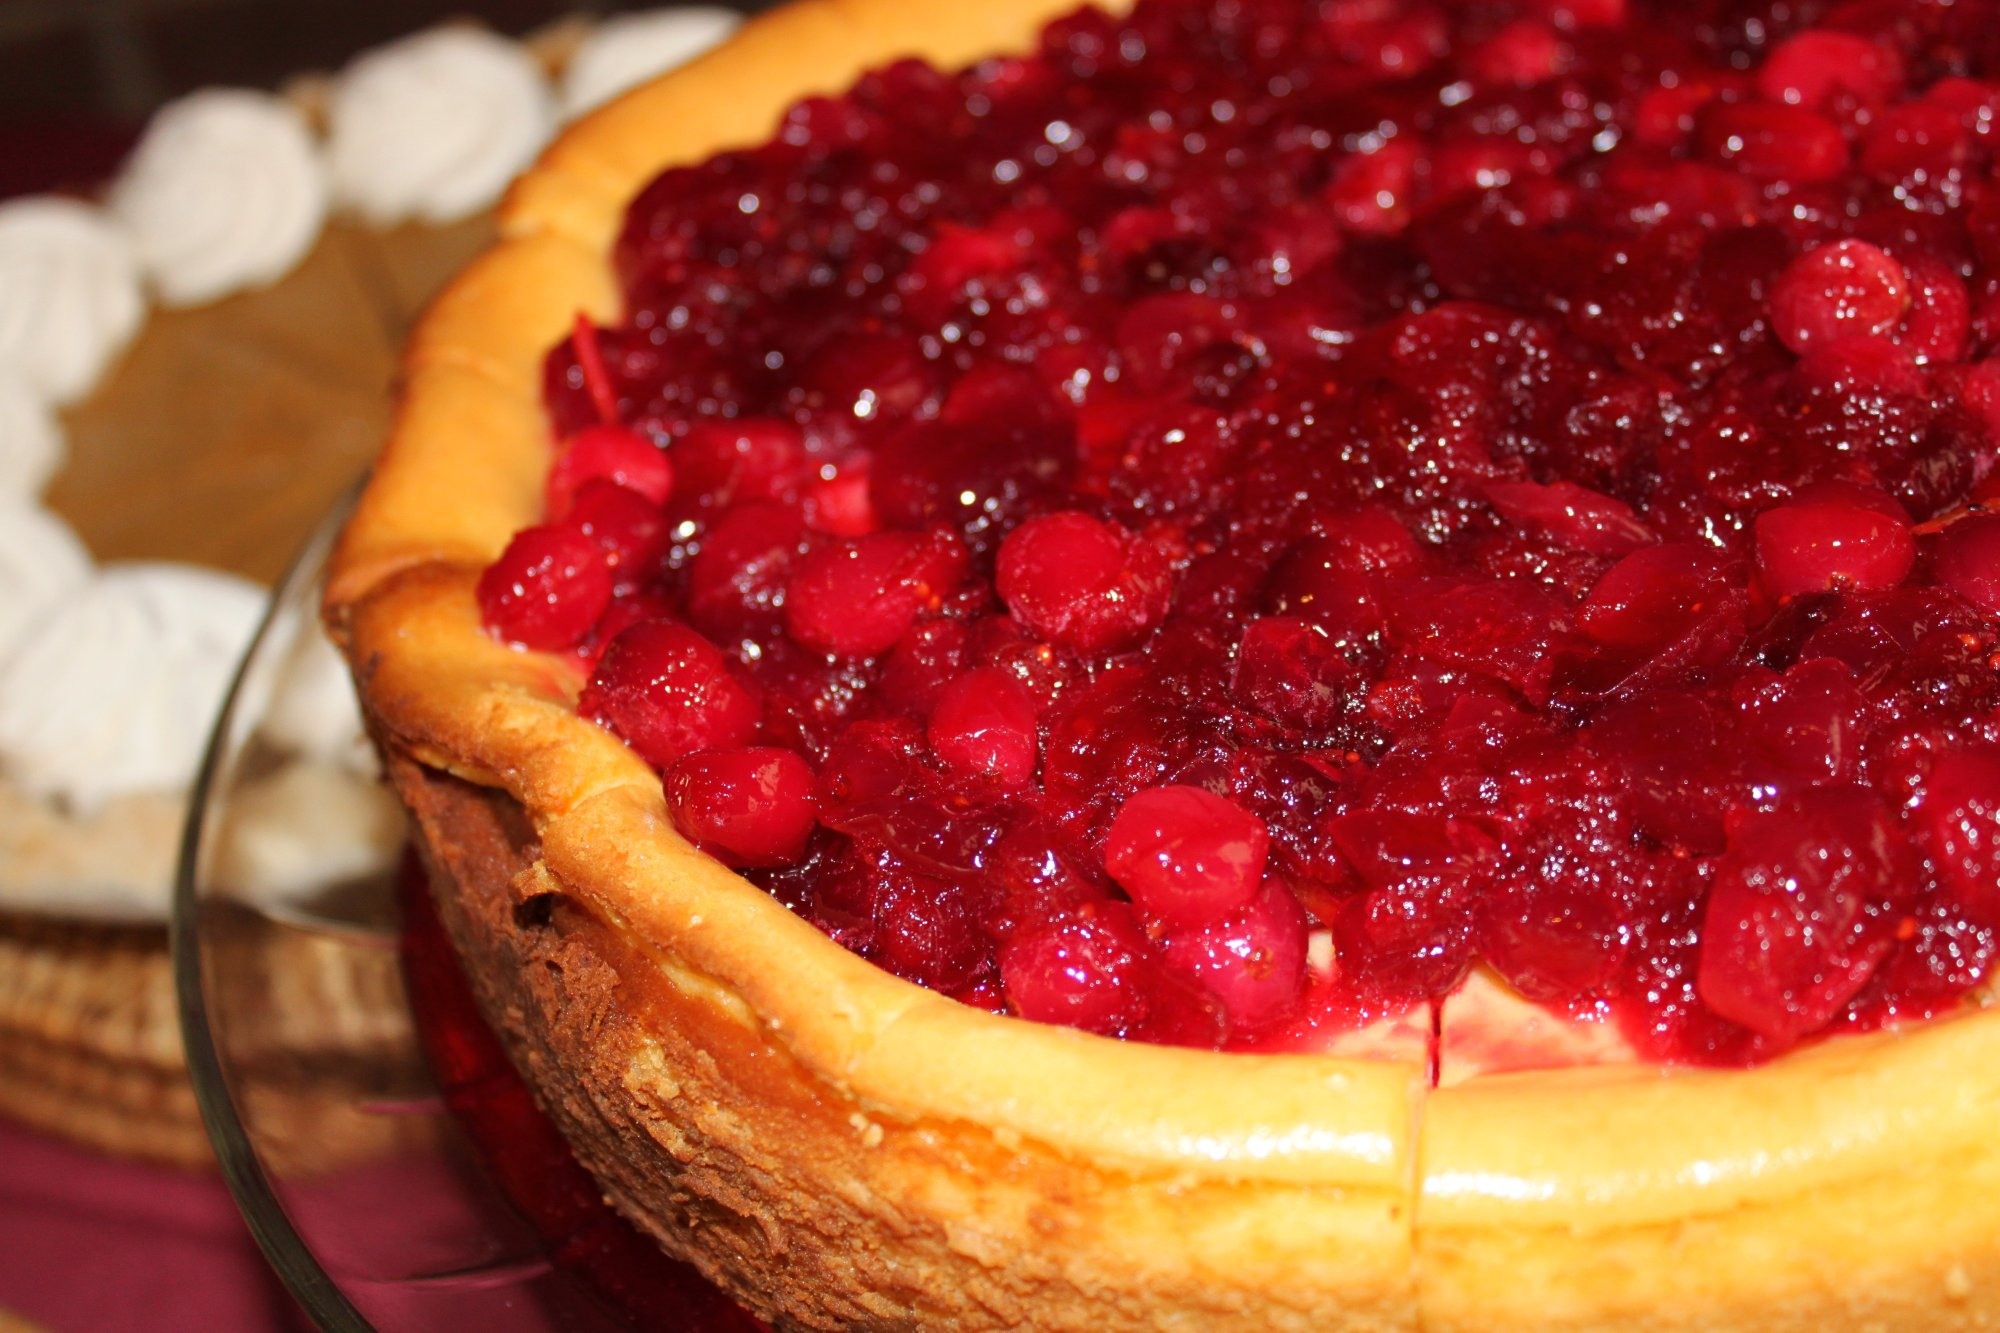 File:Cranberry cheesecake is the best!.jpg - Wikimedia Commons